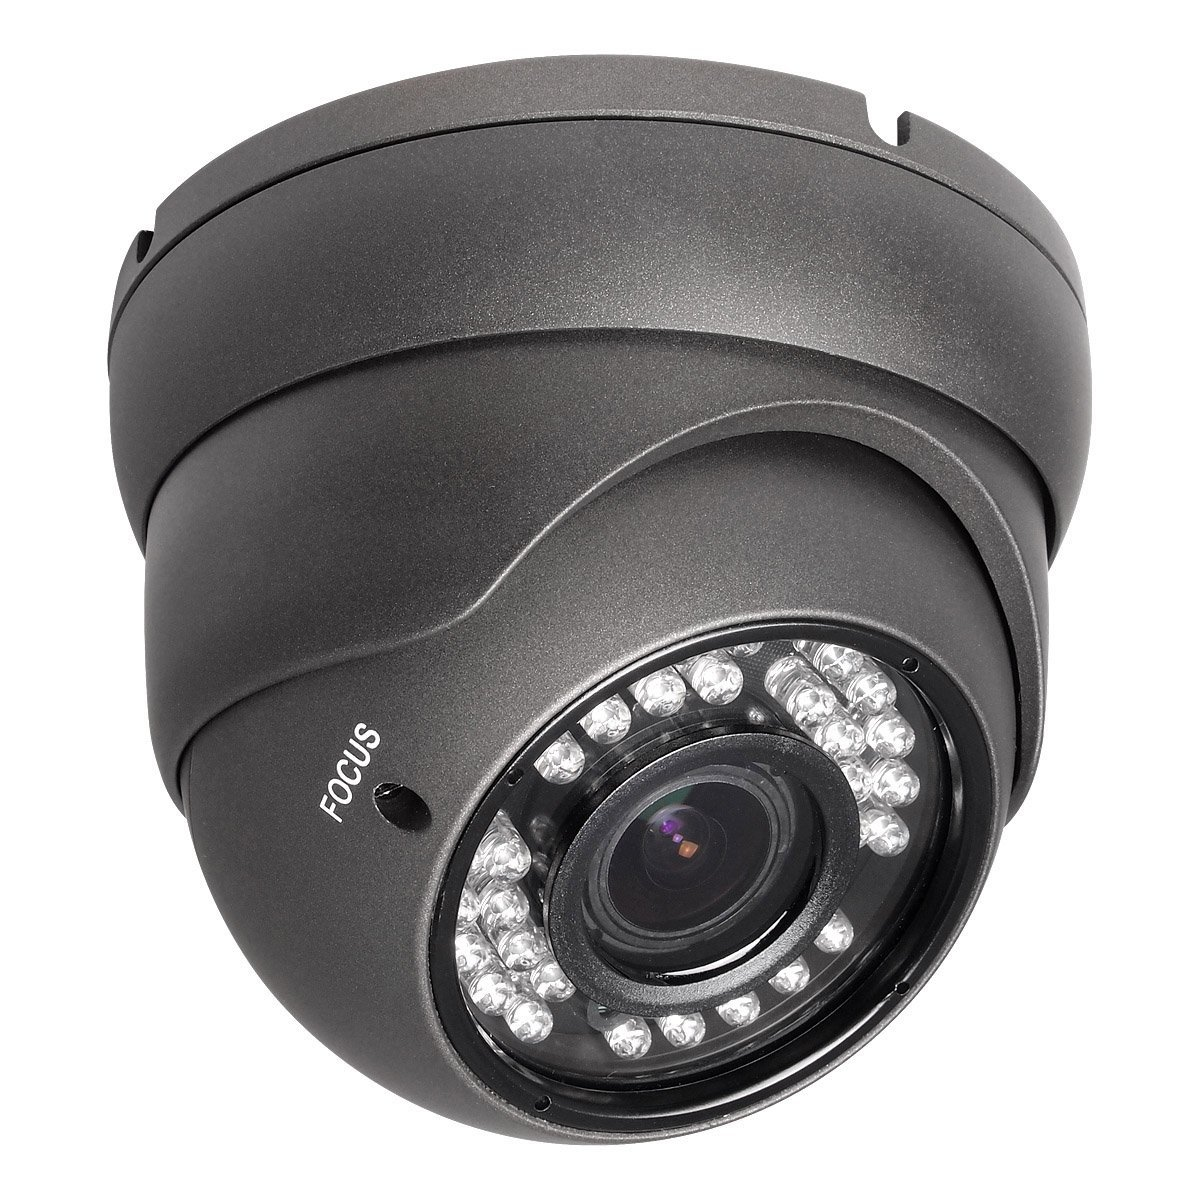 R-Tech HD Video Security